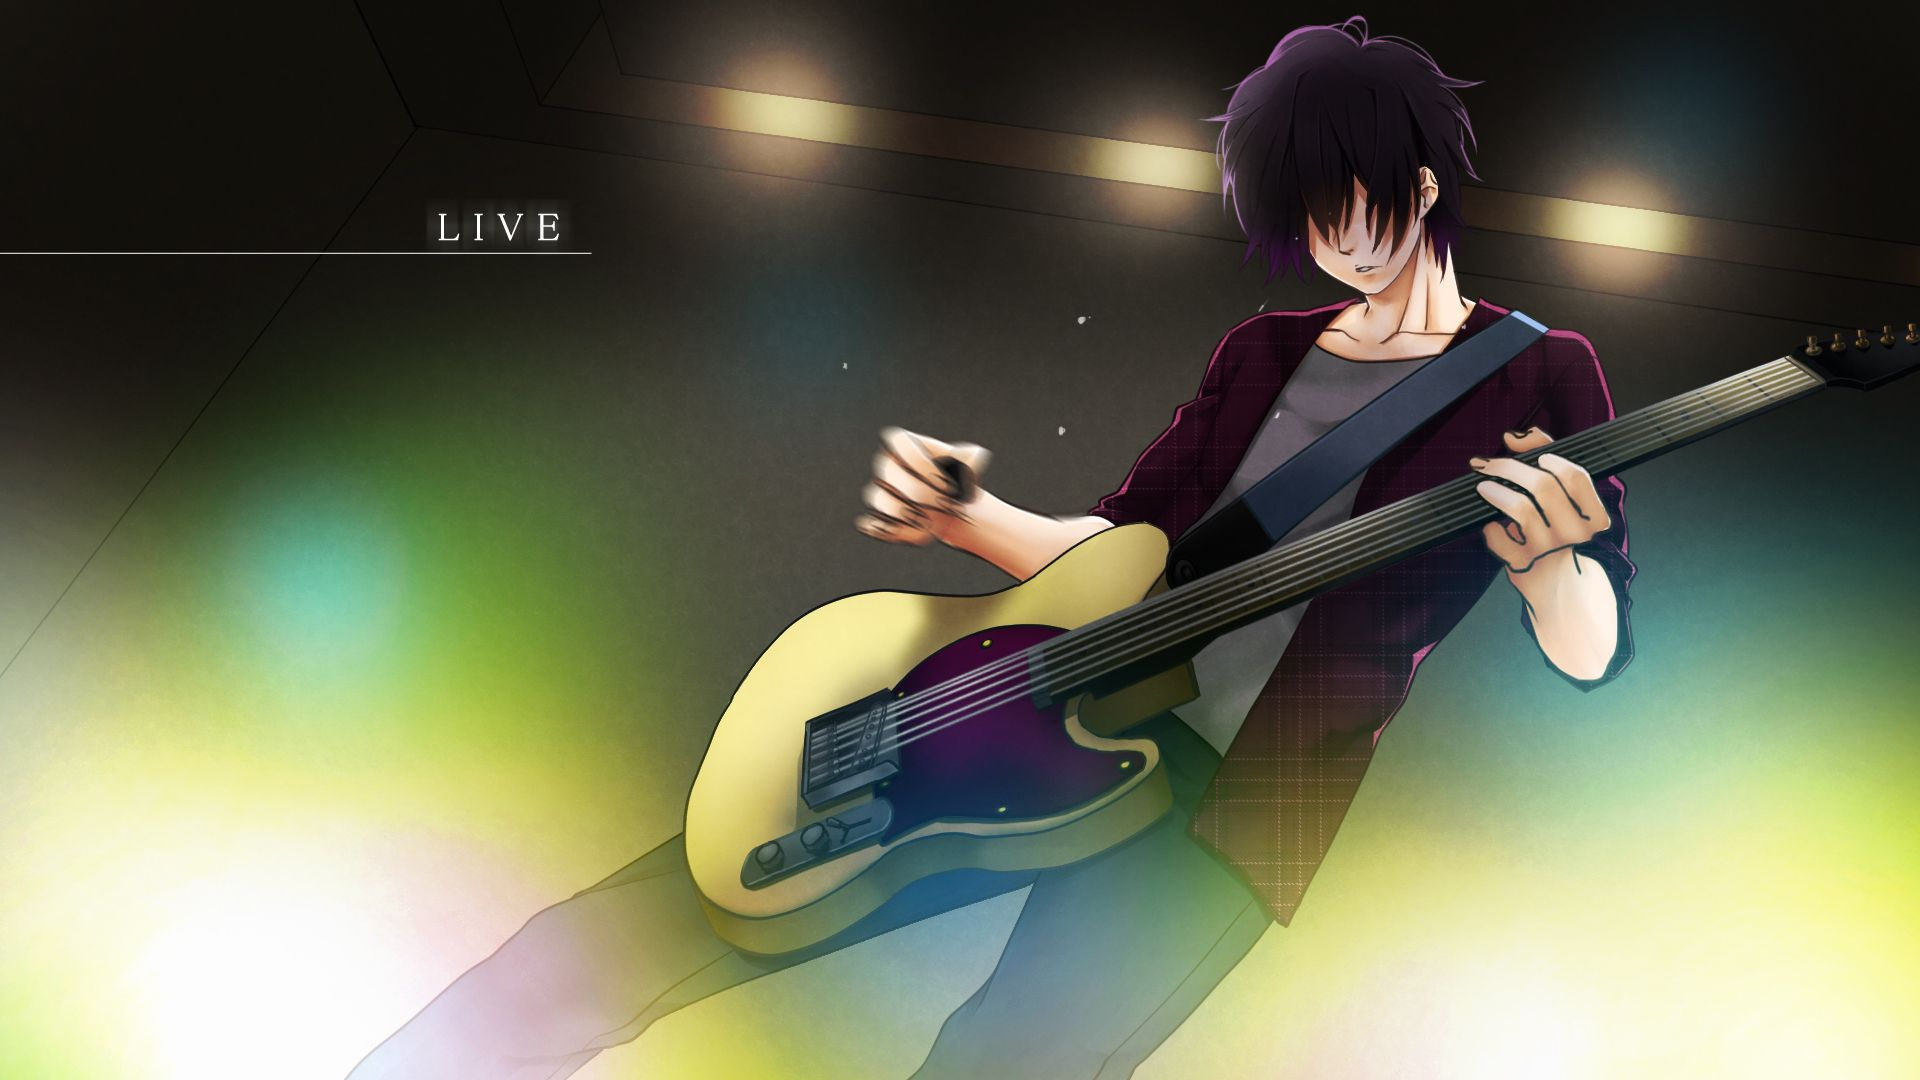 Anime boy with guitar wallpaper